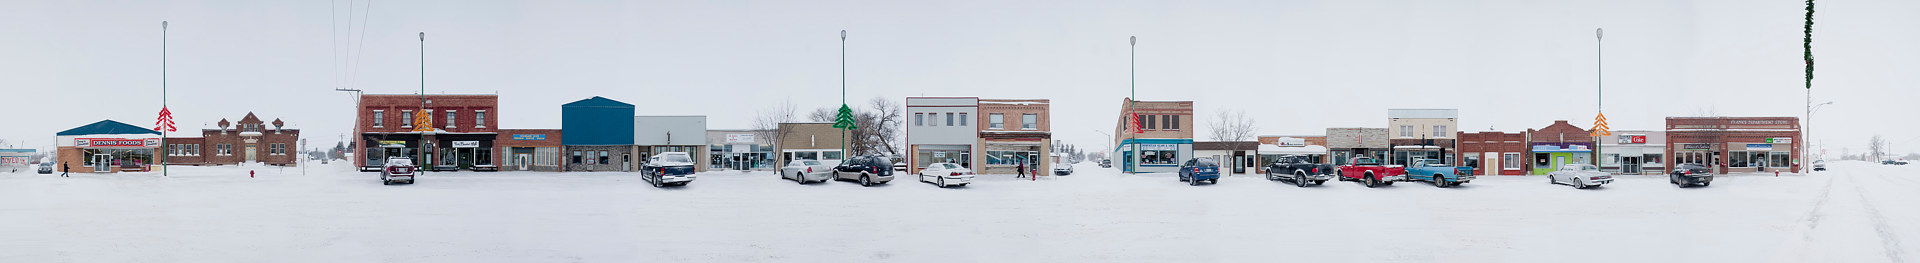 Canora Winter SK. 112X21.5   2014 by Danny Singer